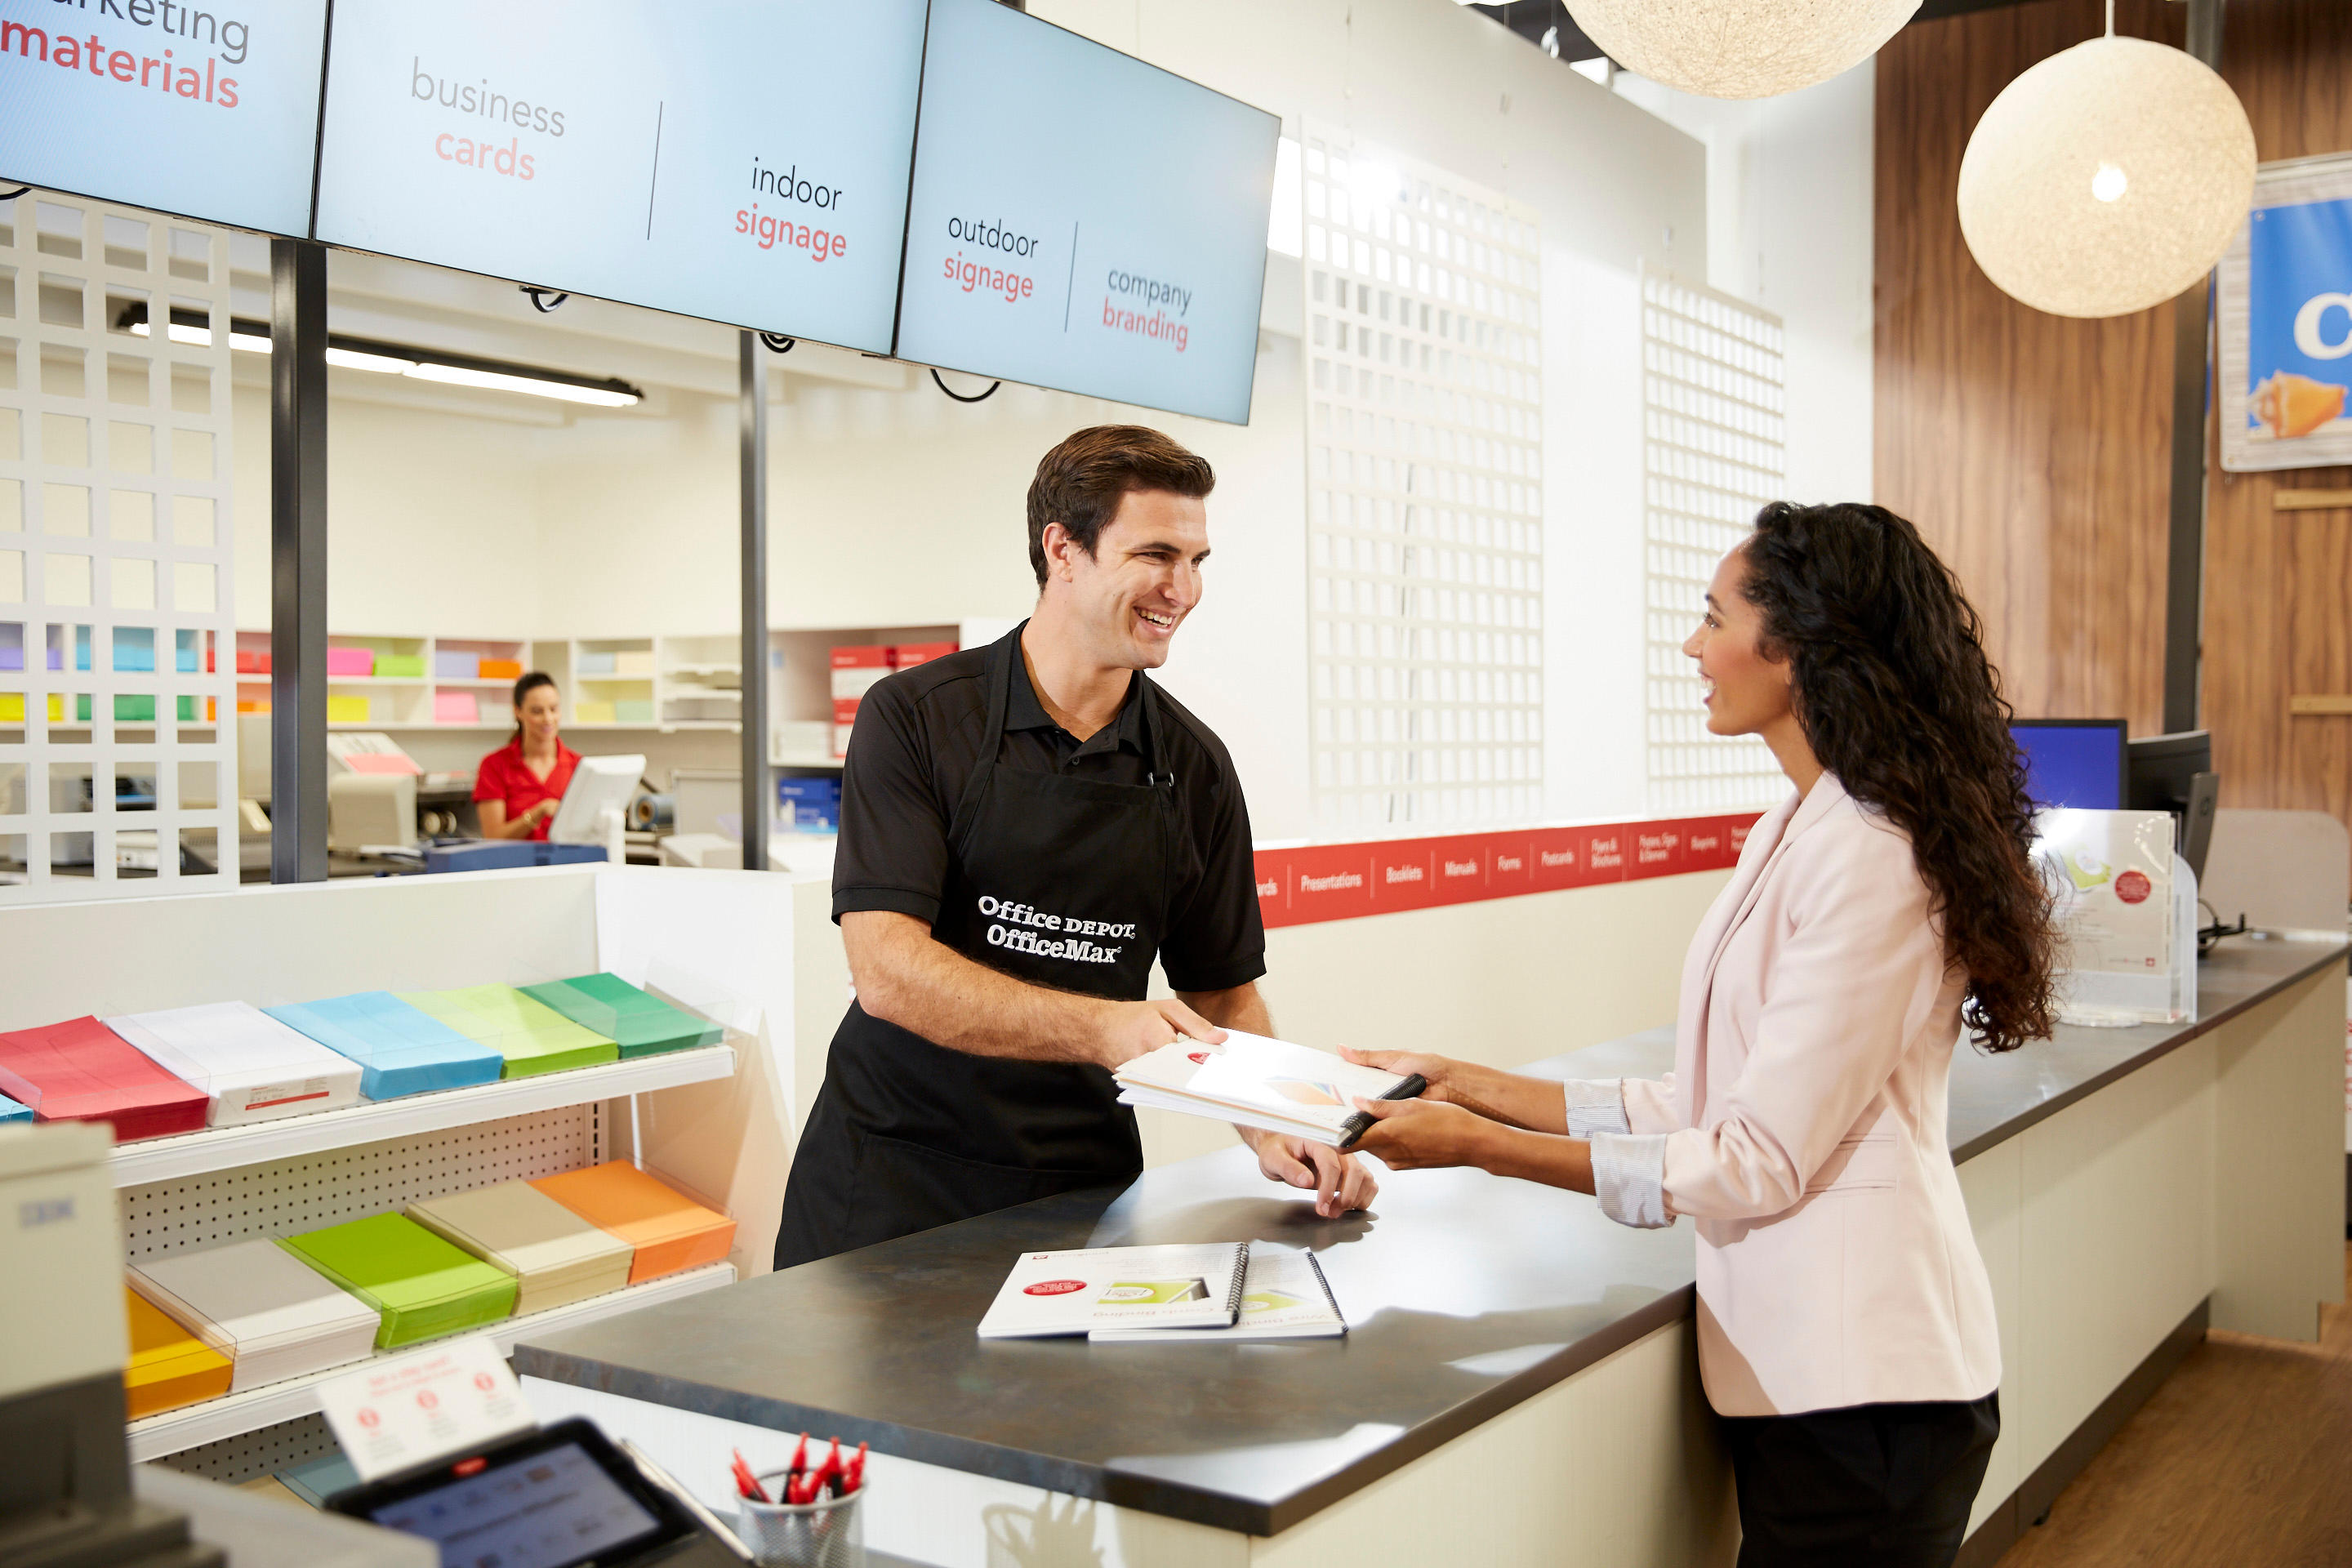 Office Depot - Print & Copy Services image 1